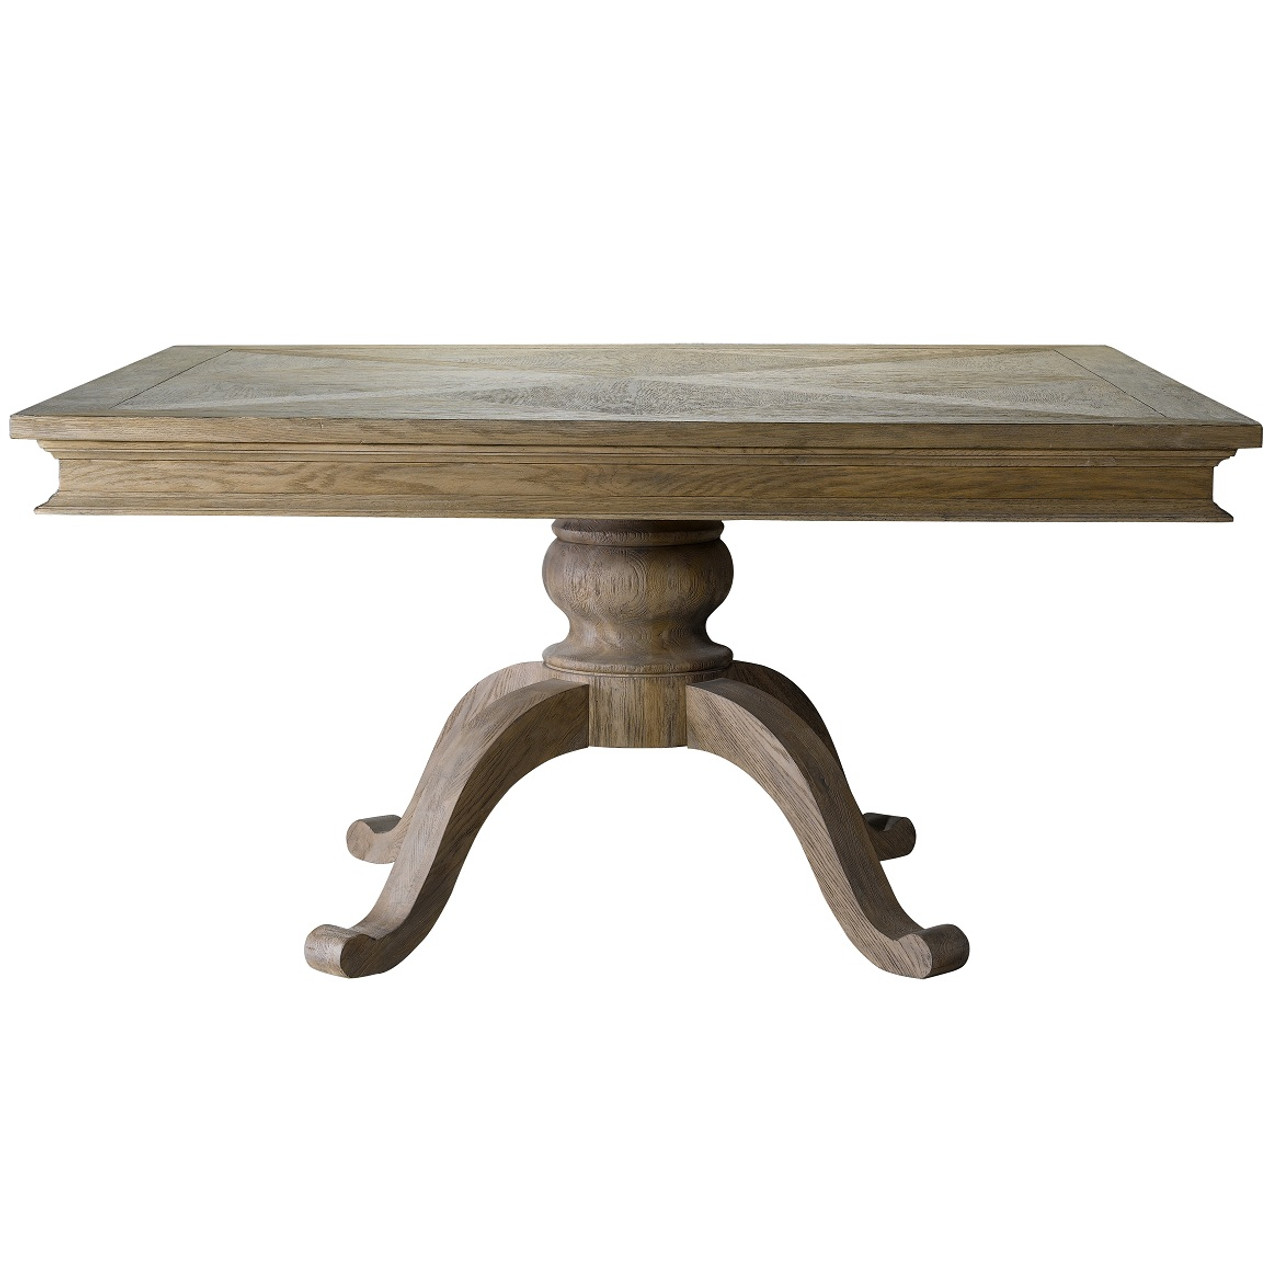 Geneva Oak Wood Square Pedestal Dining Table 47"